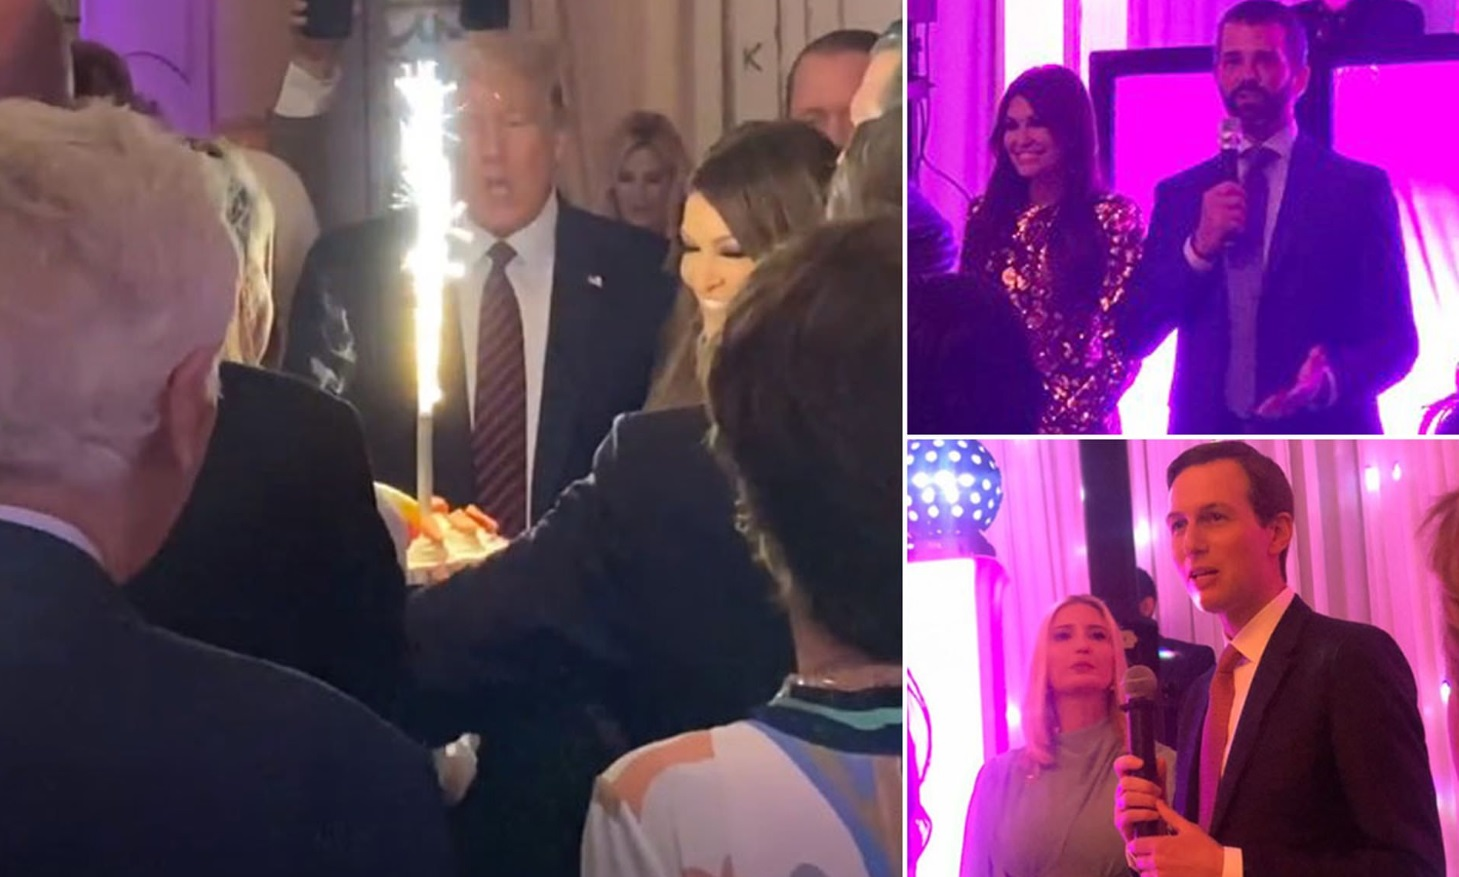 PHOTO Donald Trump's Throwing Lavish Party At Mar-A-Lago While People Are Dying Of Corona Virus